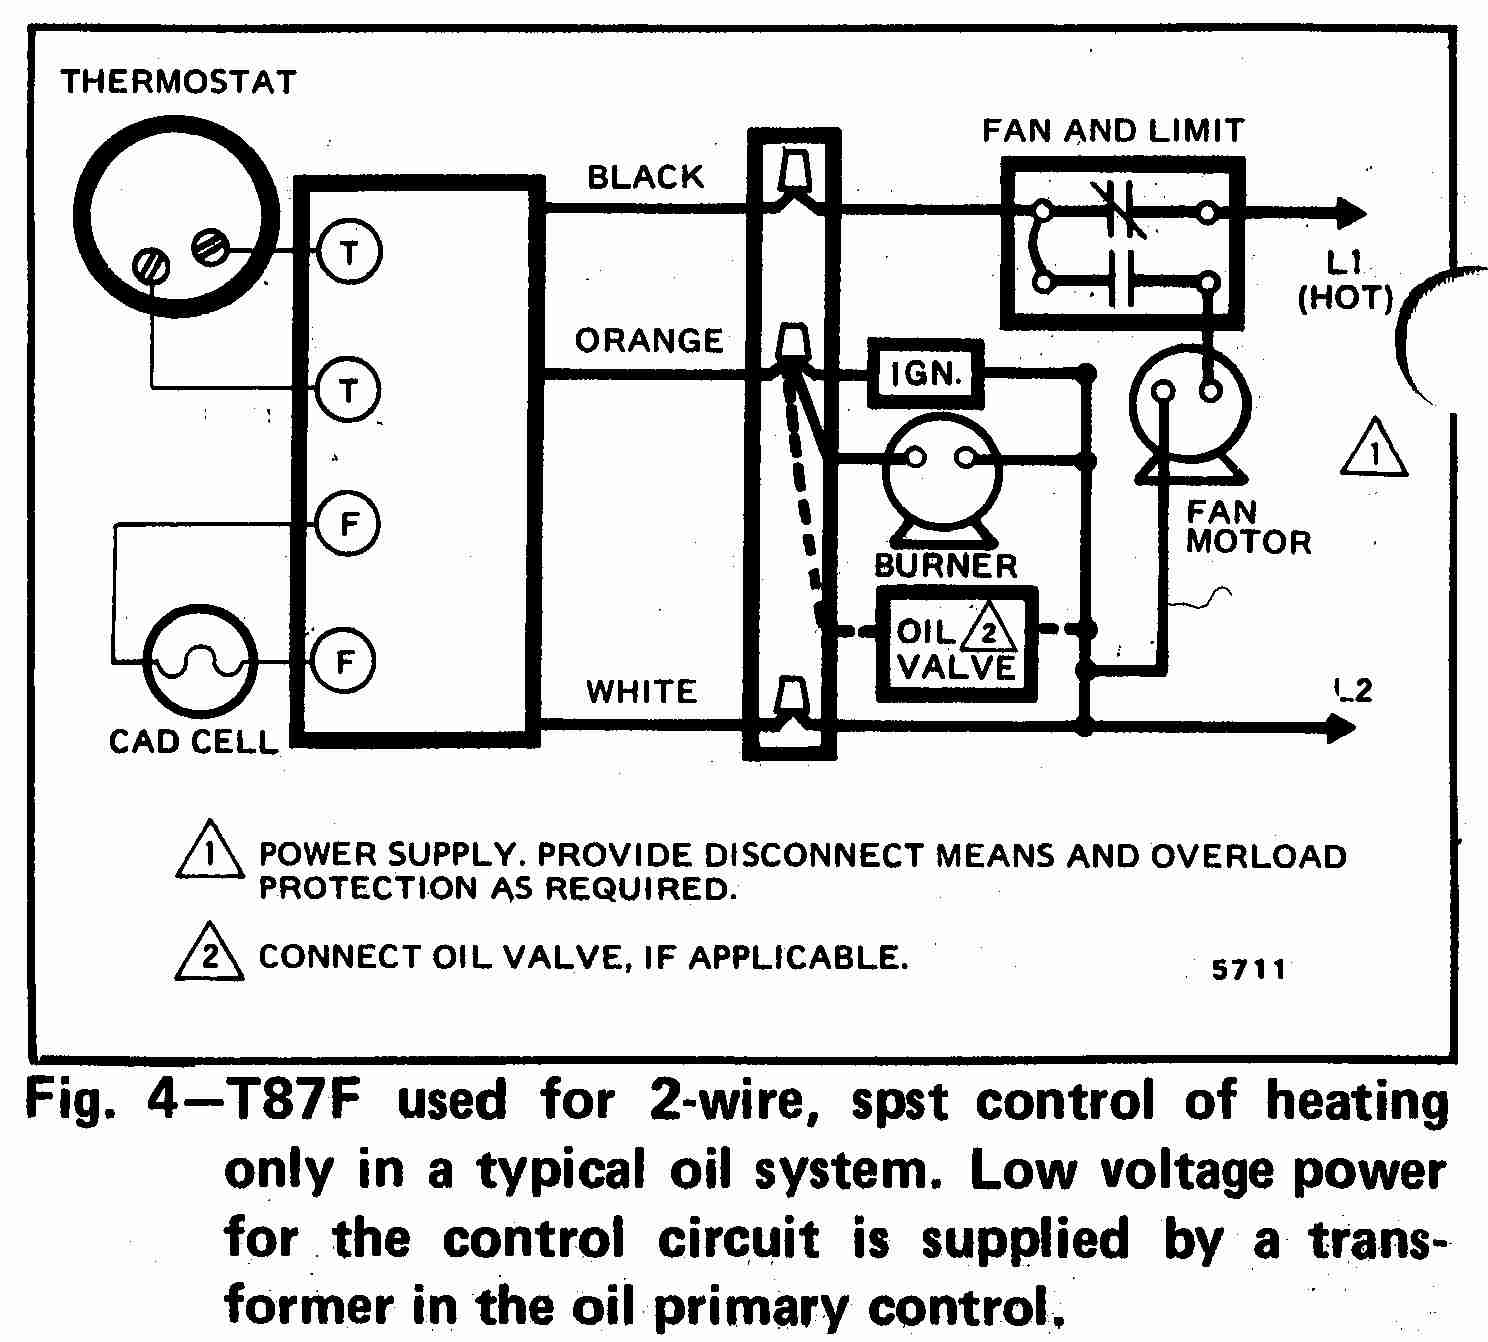 TT_T87F_0002_2W_DJF room thermostat wiring diagrams for hvac systems imit boiler thermostat wiring diagram at fashall.co